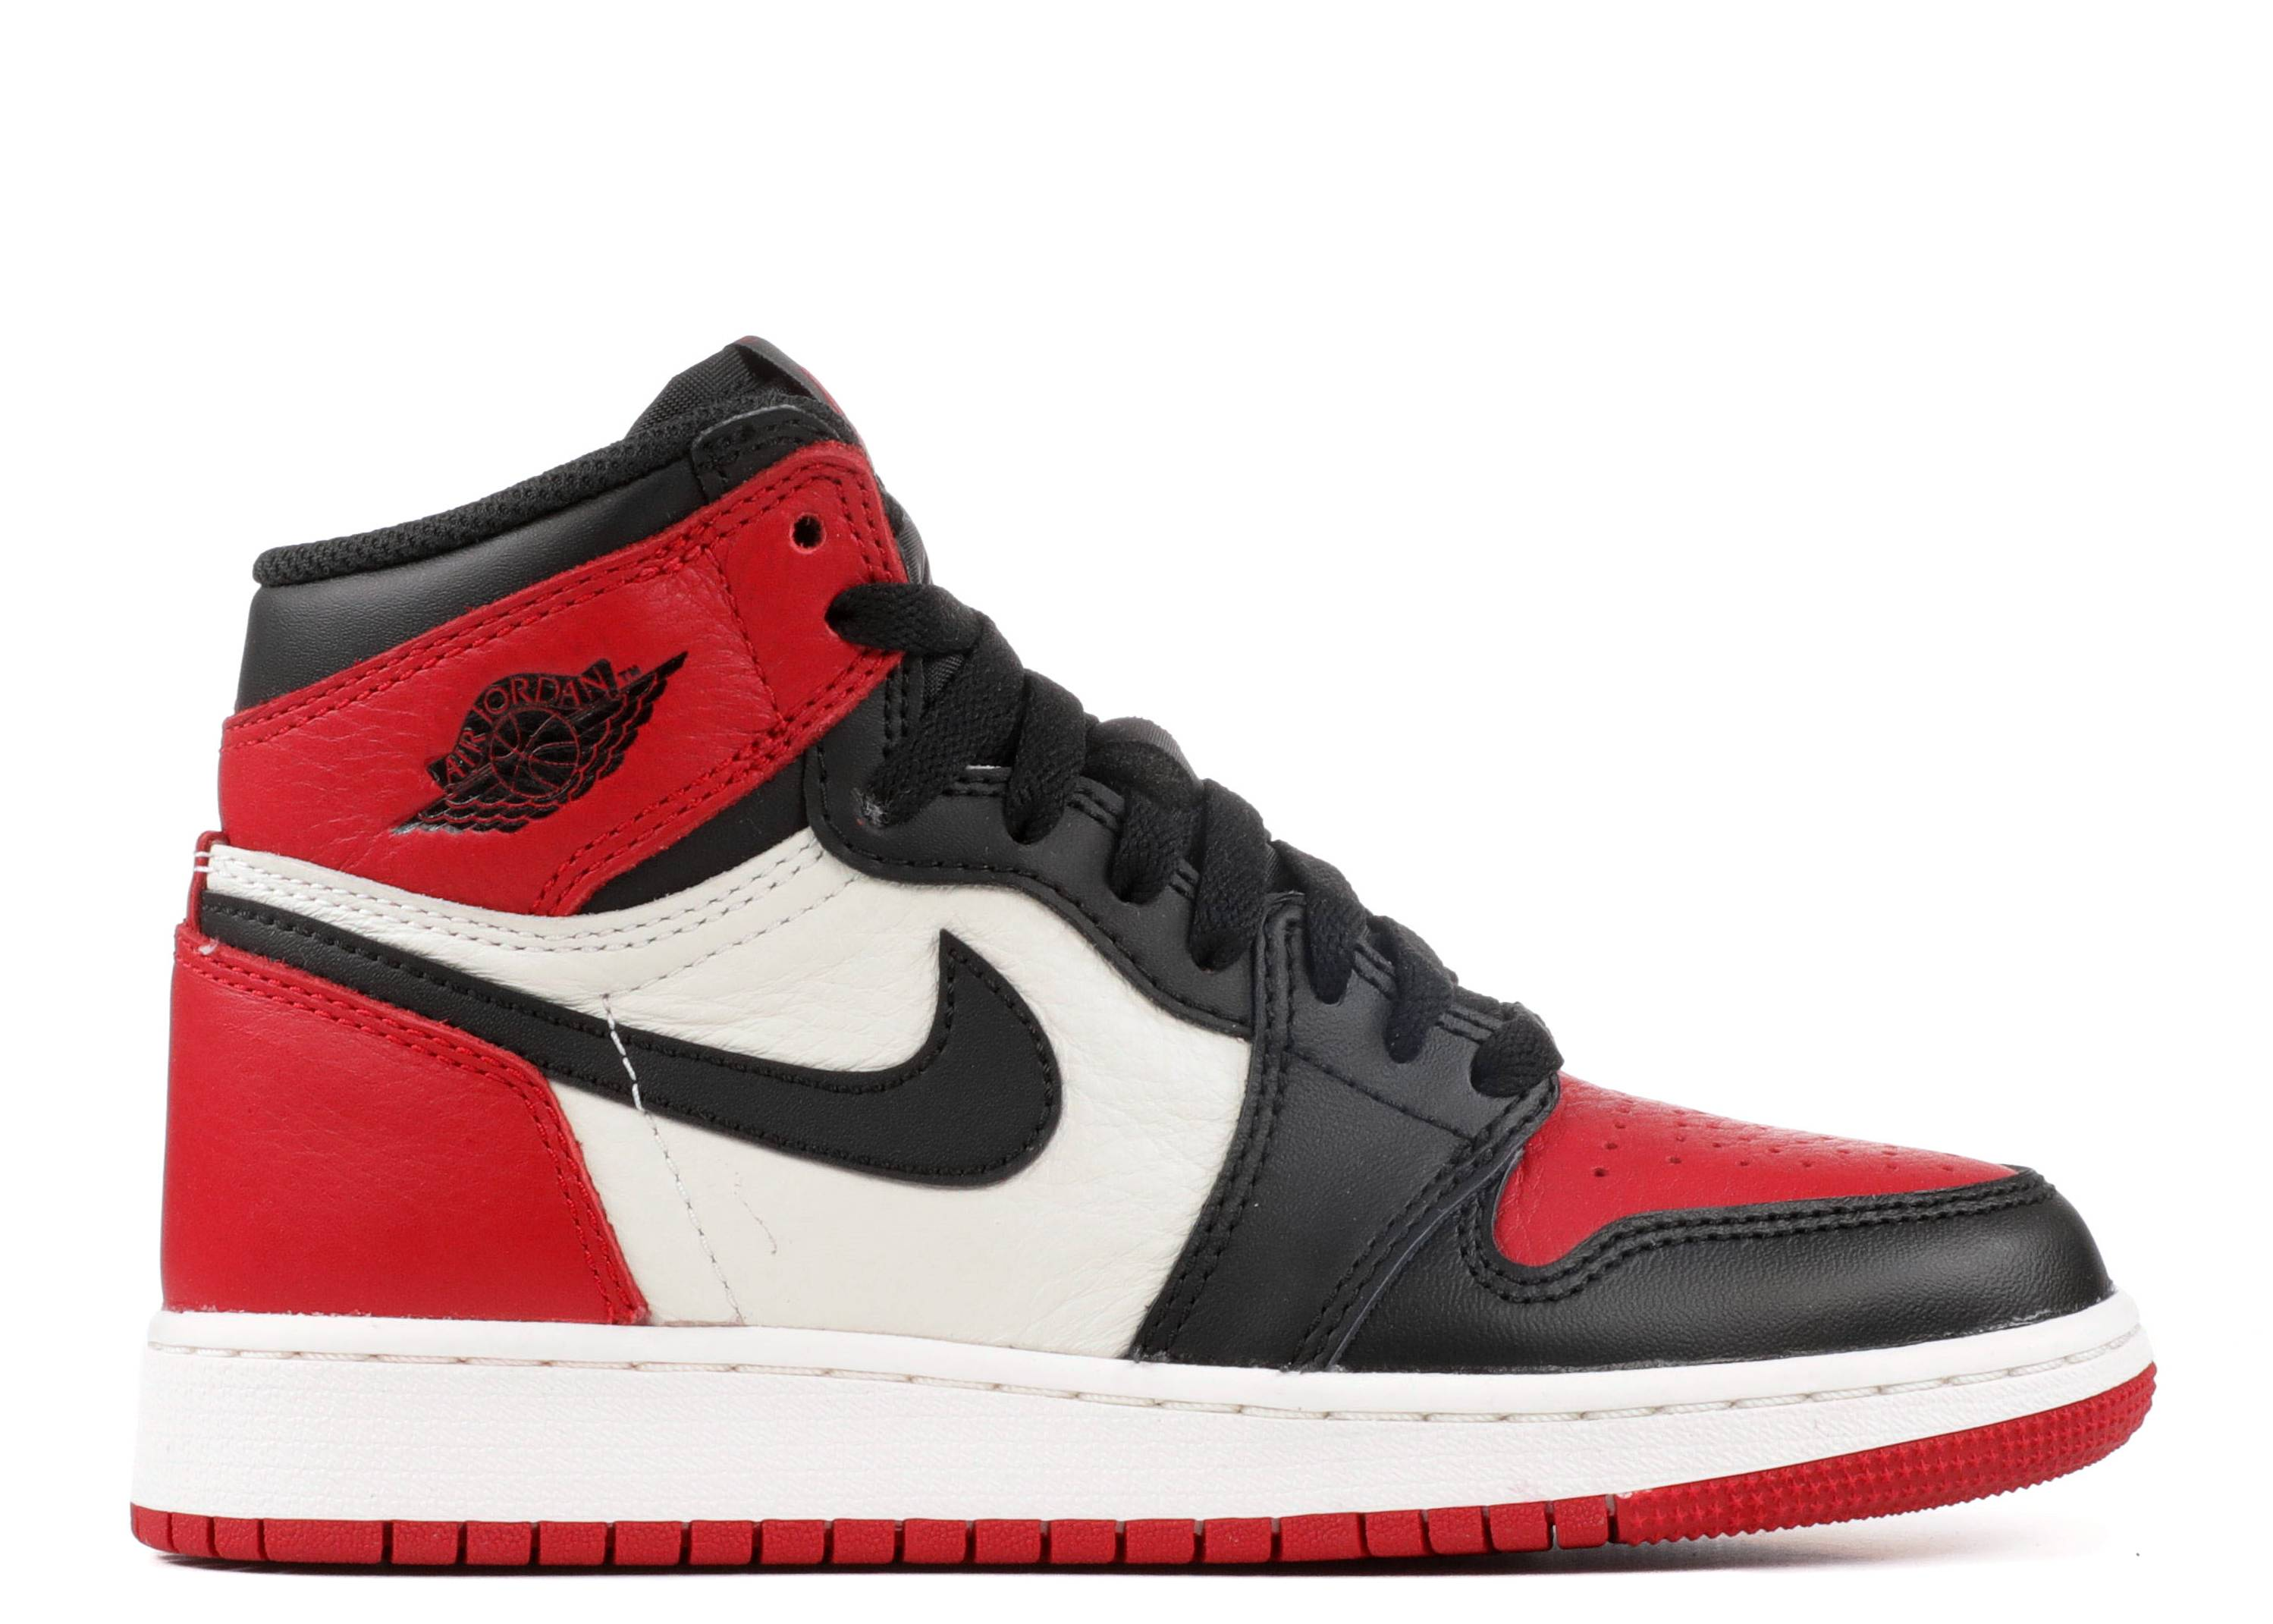 air jordan 1 retro high og bg (gs) bred toe 1